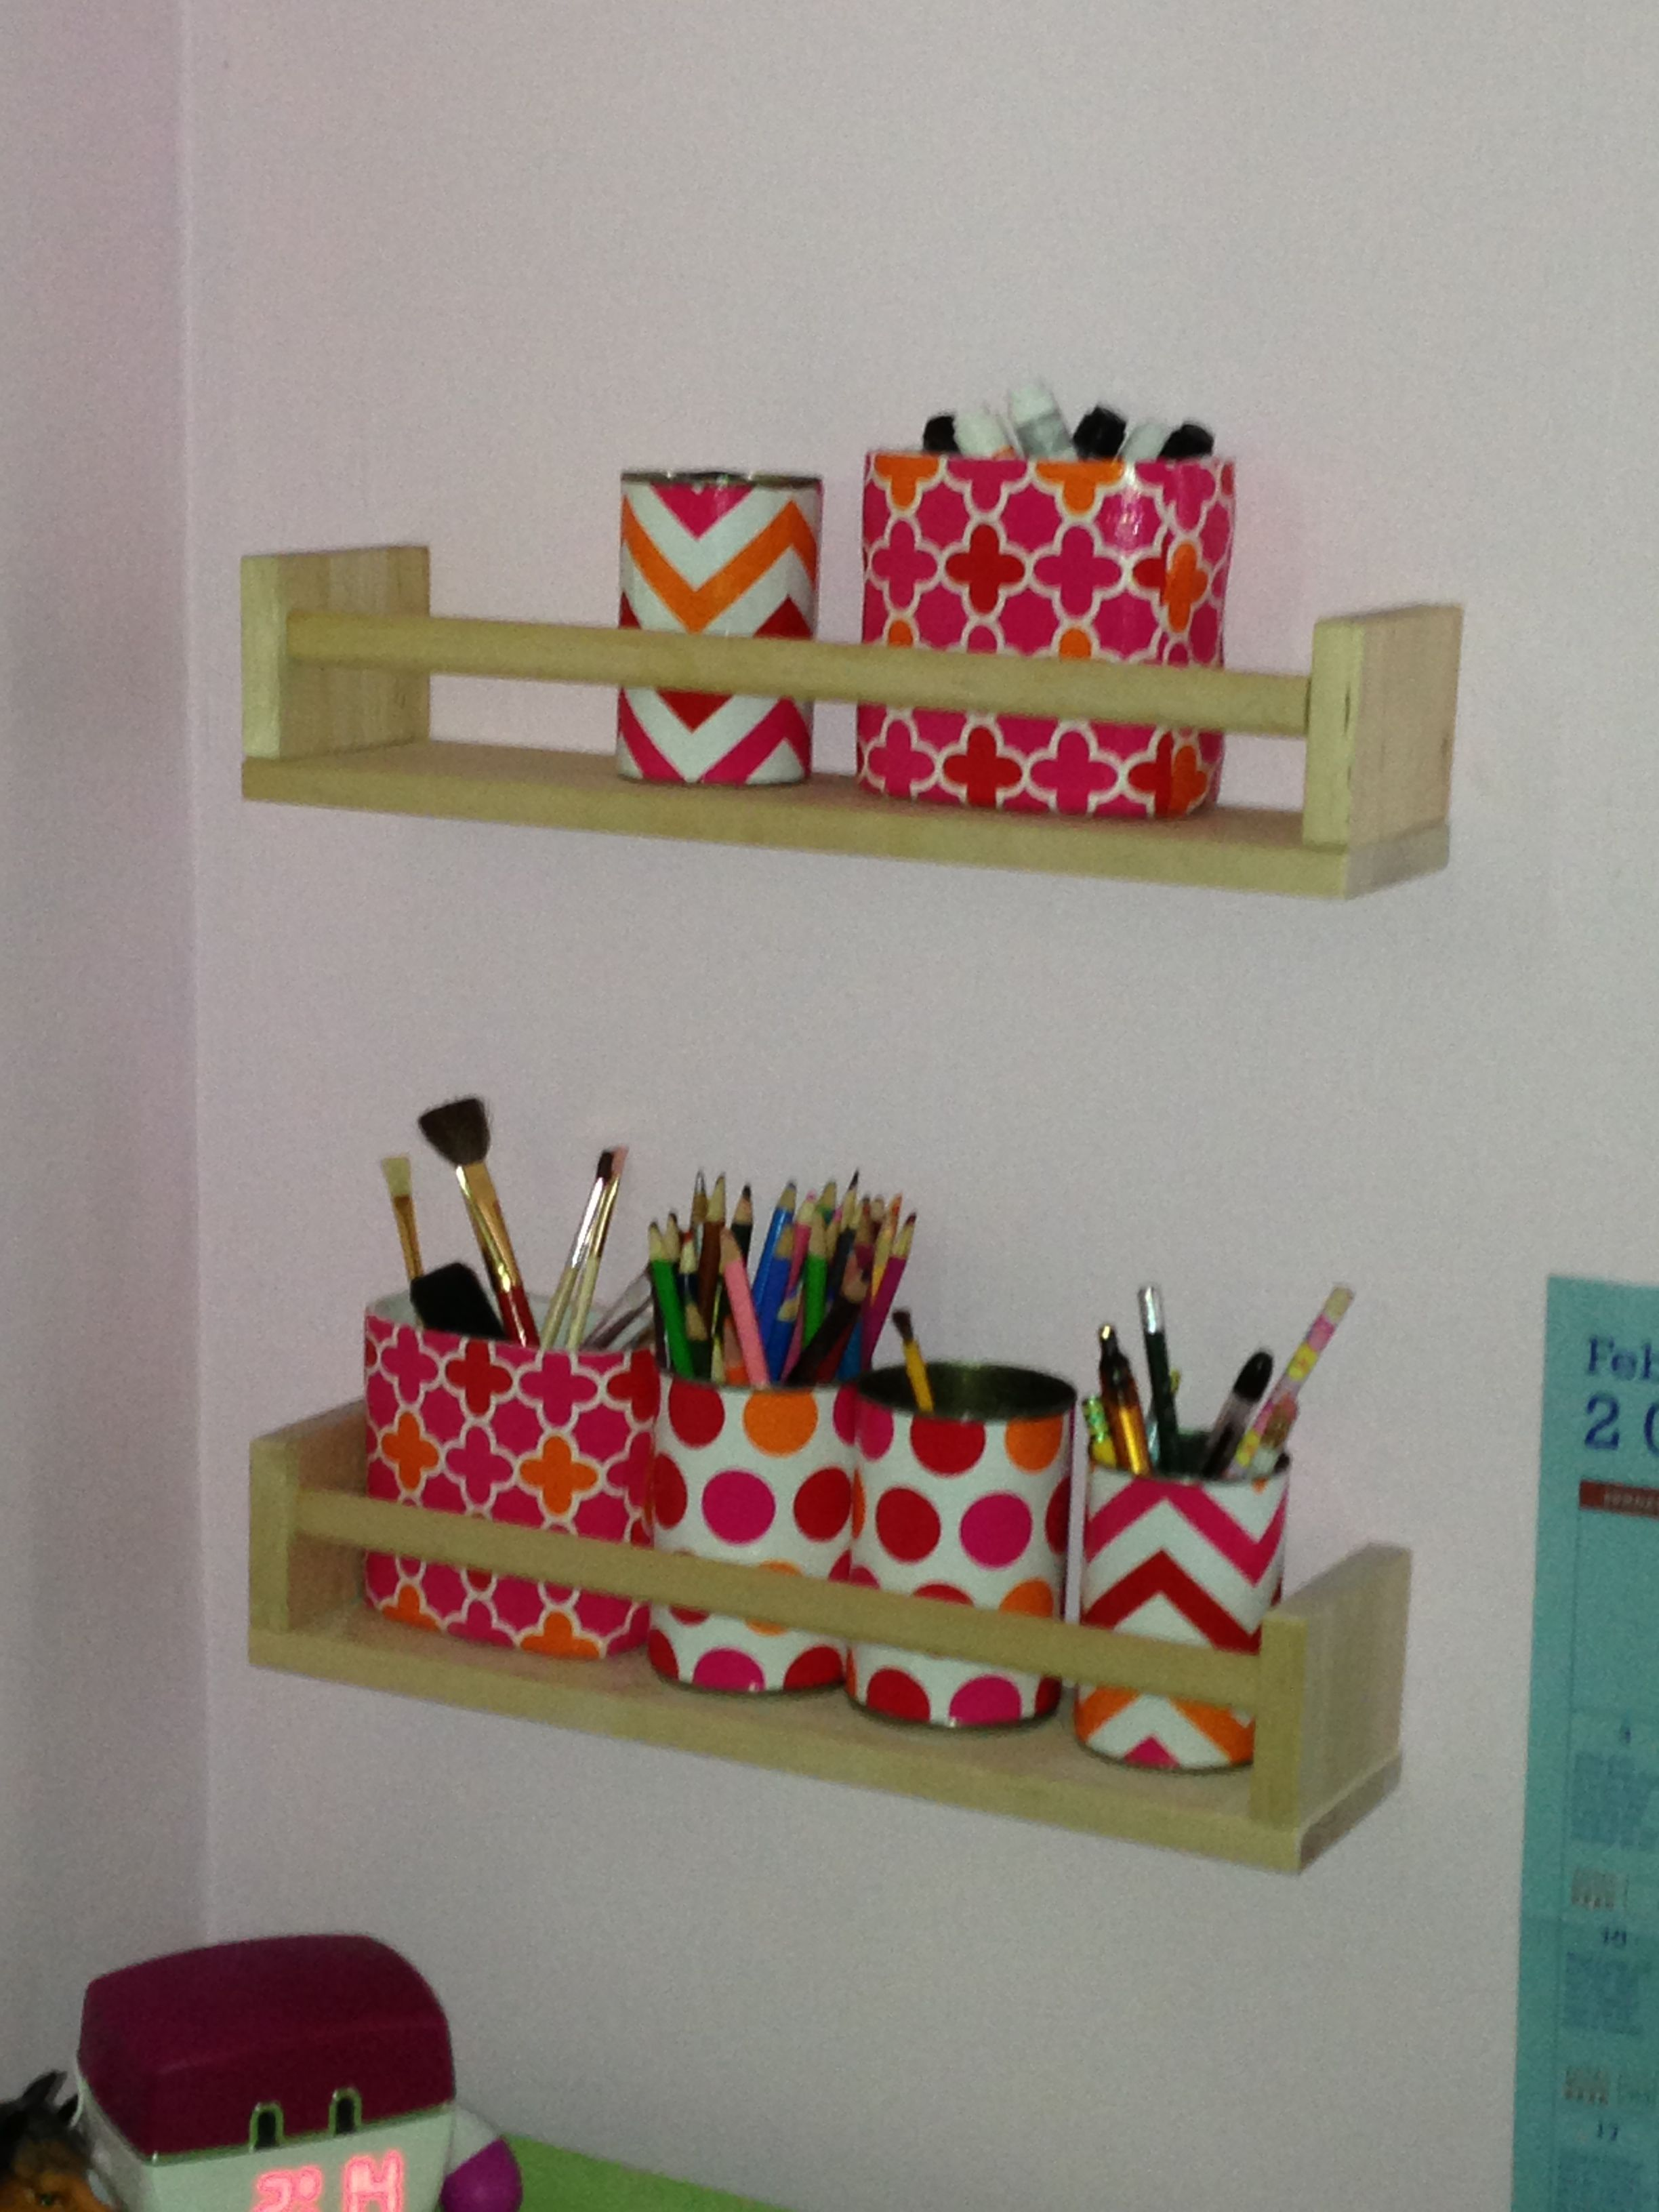 Ikea Bekvam Spice Shelves With Recycled Cans (covered In